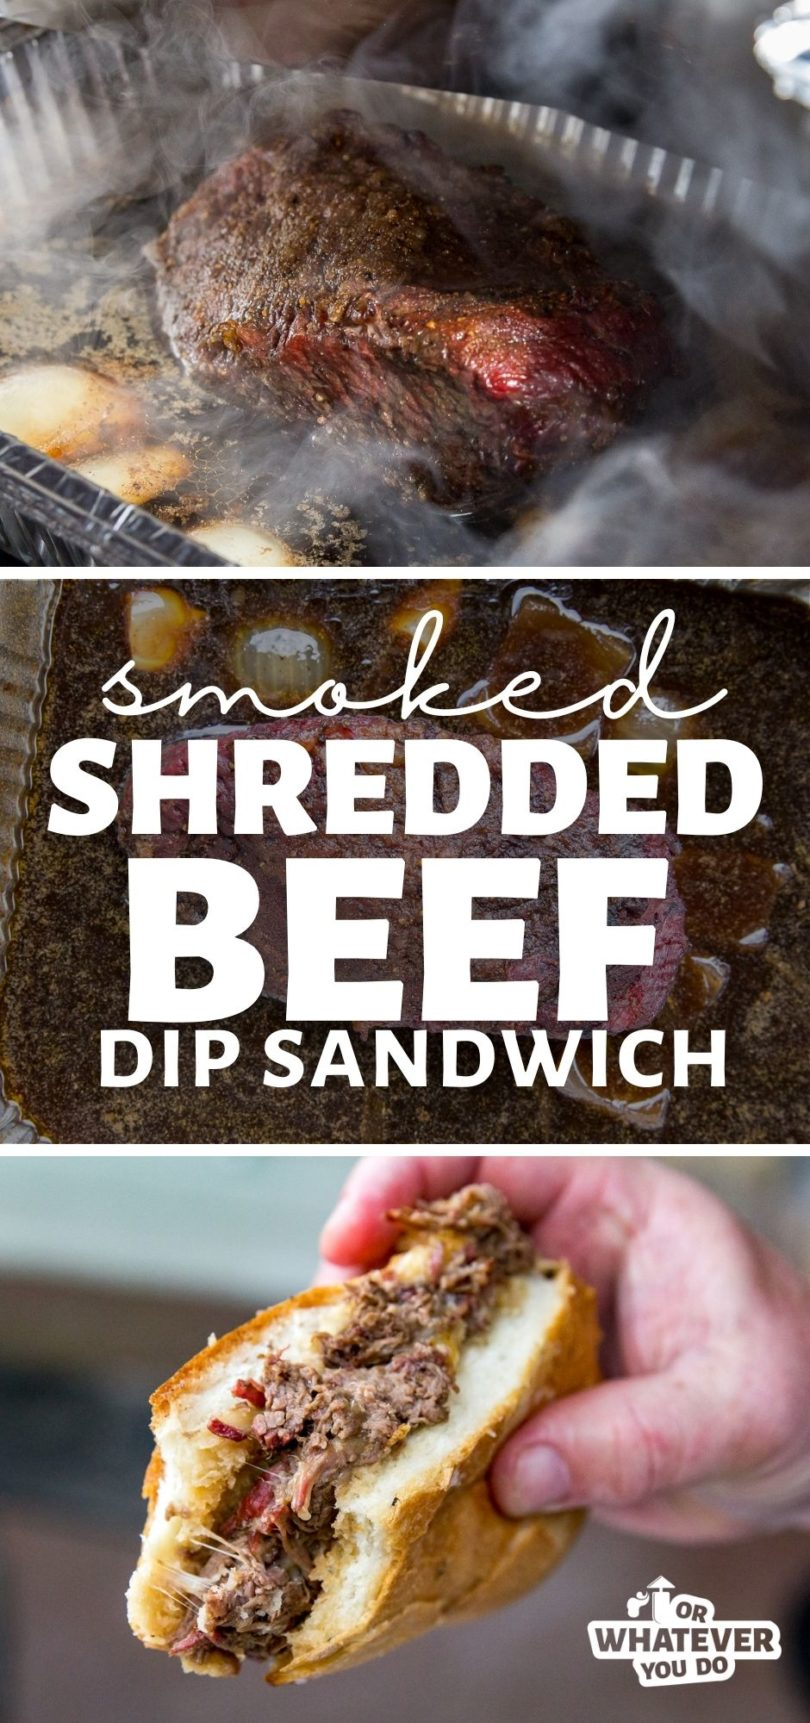 Smoked Shredded Beef Dip Sandwich